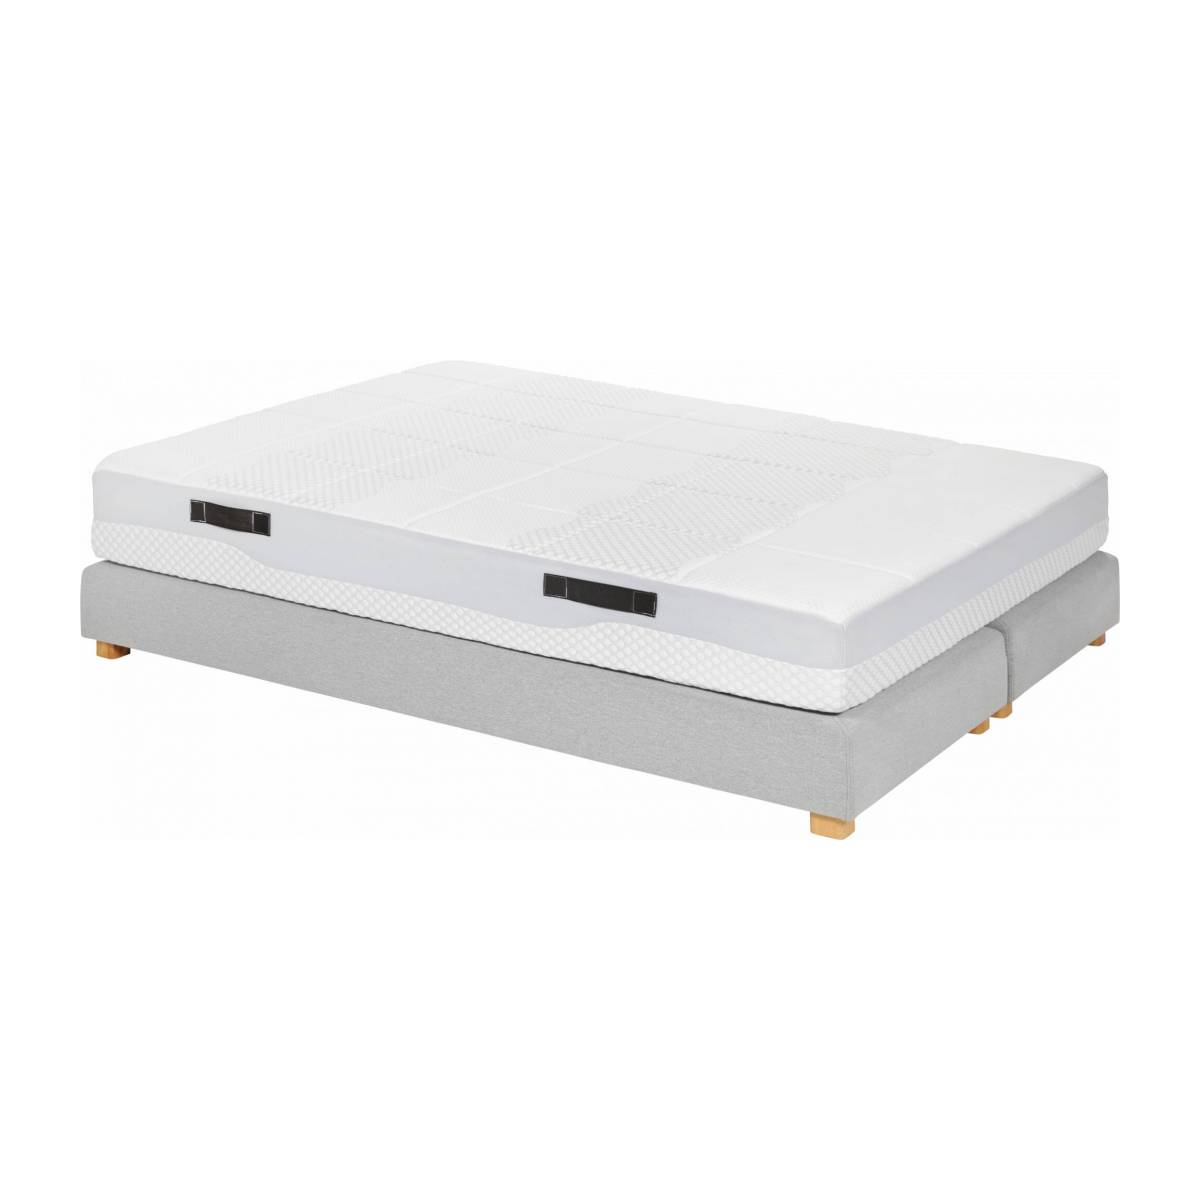 Foam mattress, width 24 cm, 180x200cm - firm support n°5